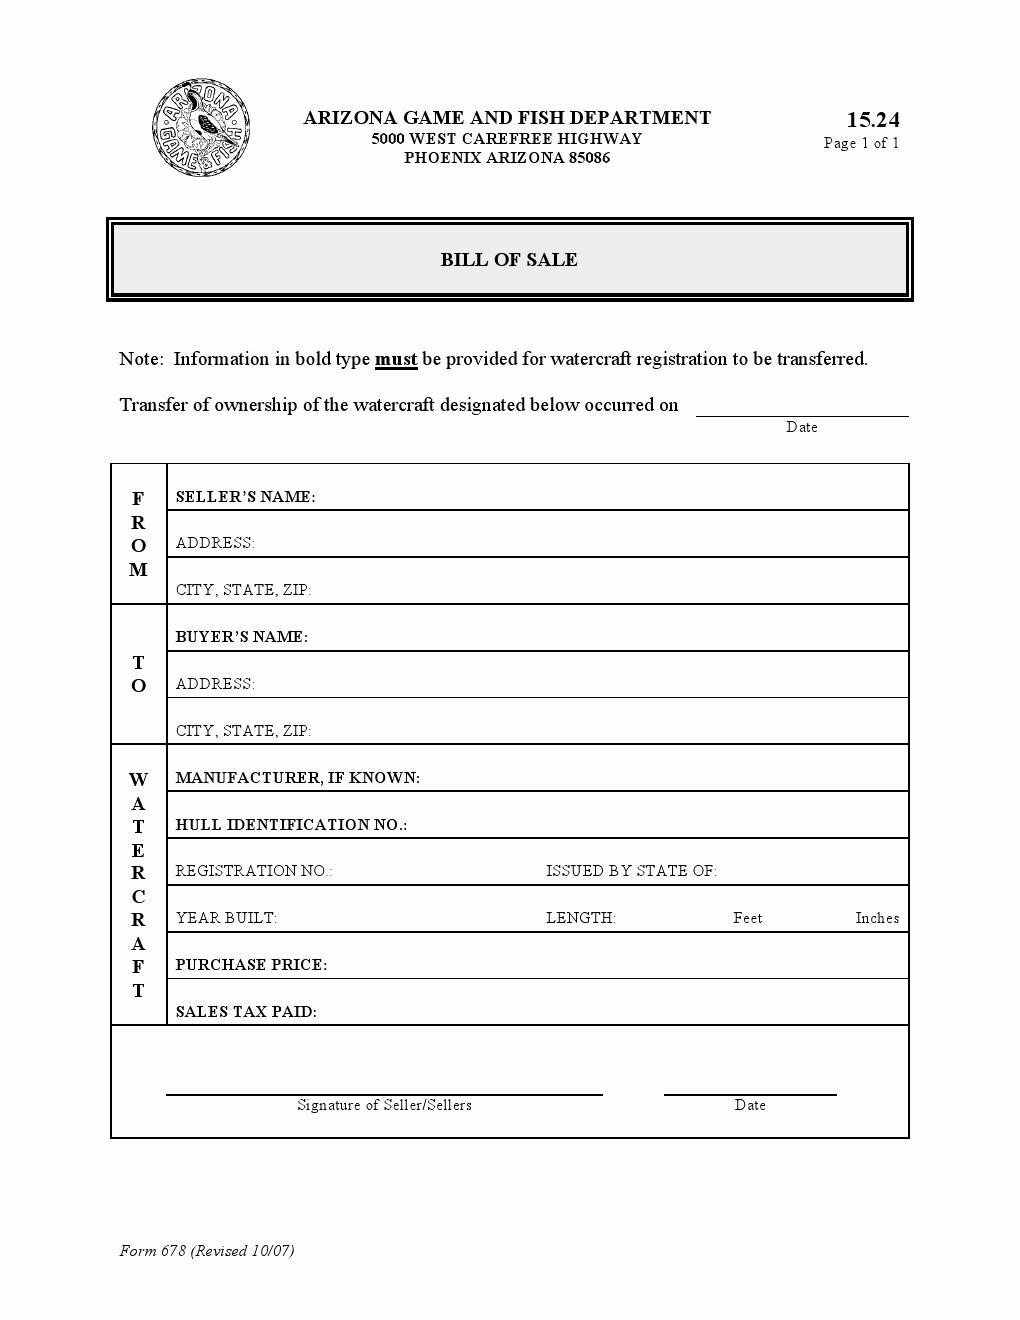 Watercraft Bill Of Sale Unique Free Arizona Watercraft Bill Of Sale form Download Pdf